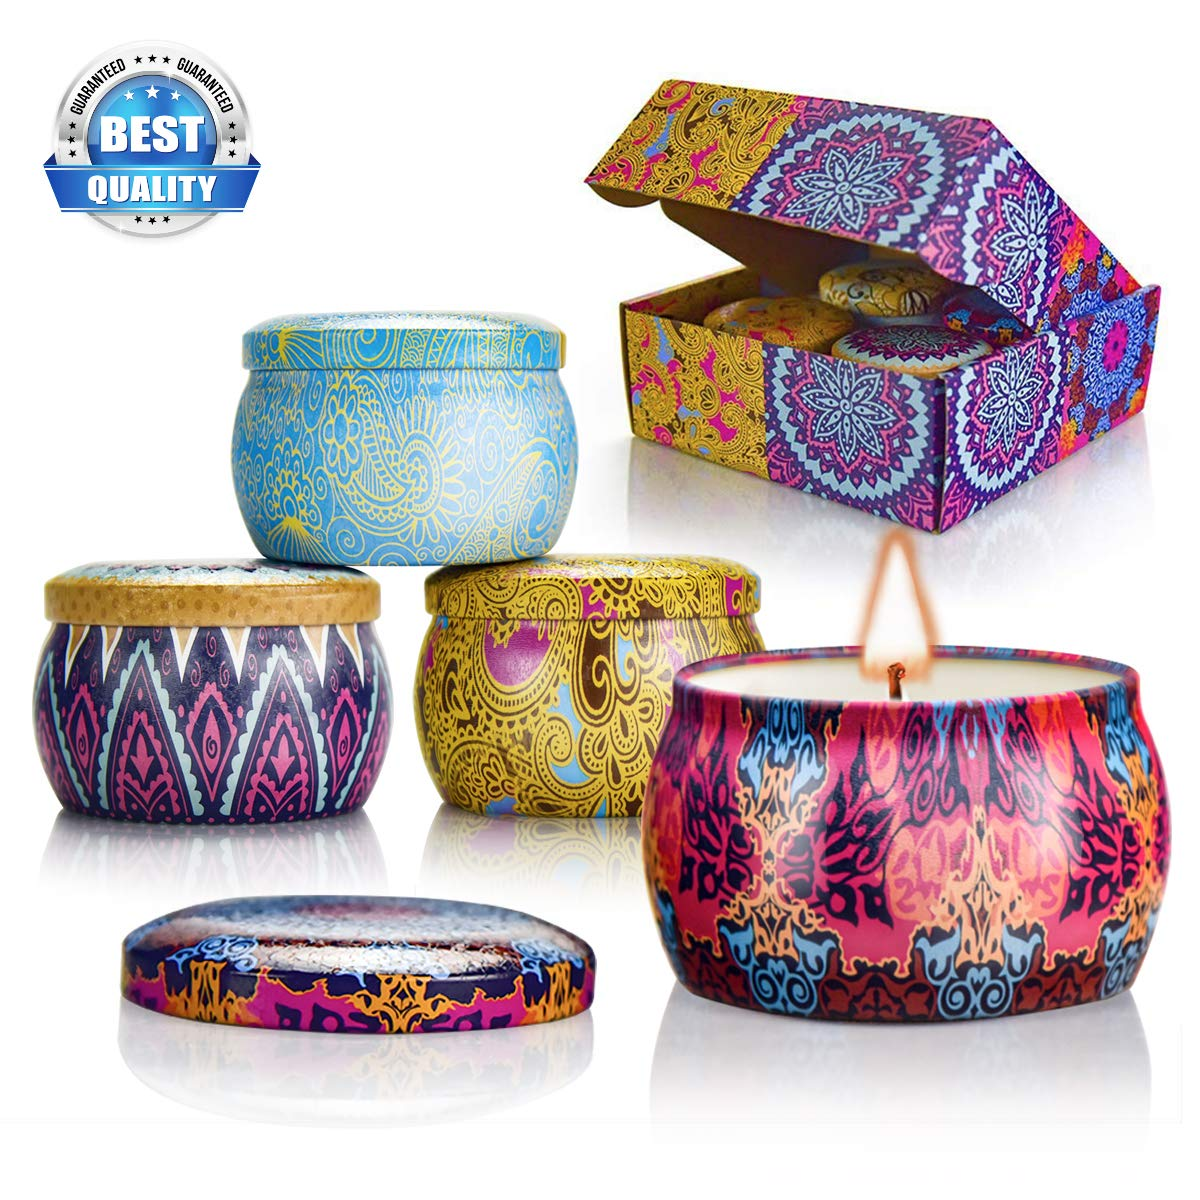 Scented Candles Gift Sets, Natural Soy Wax Aromatherapy Candles Portable Travel Tin Candles Women Gift with Fragrance Essential Oil, 4.4Oz 25 Hour Burn Time Per Candle for Bath Yoga Home 4 Pack